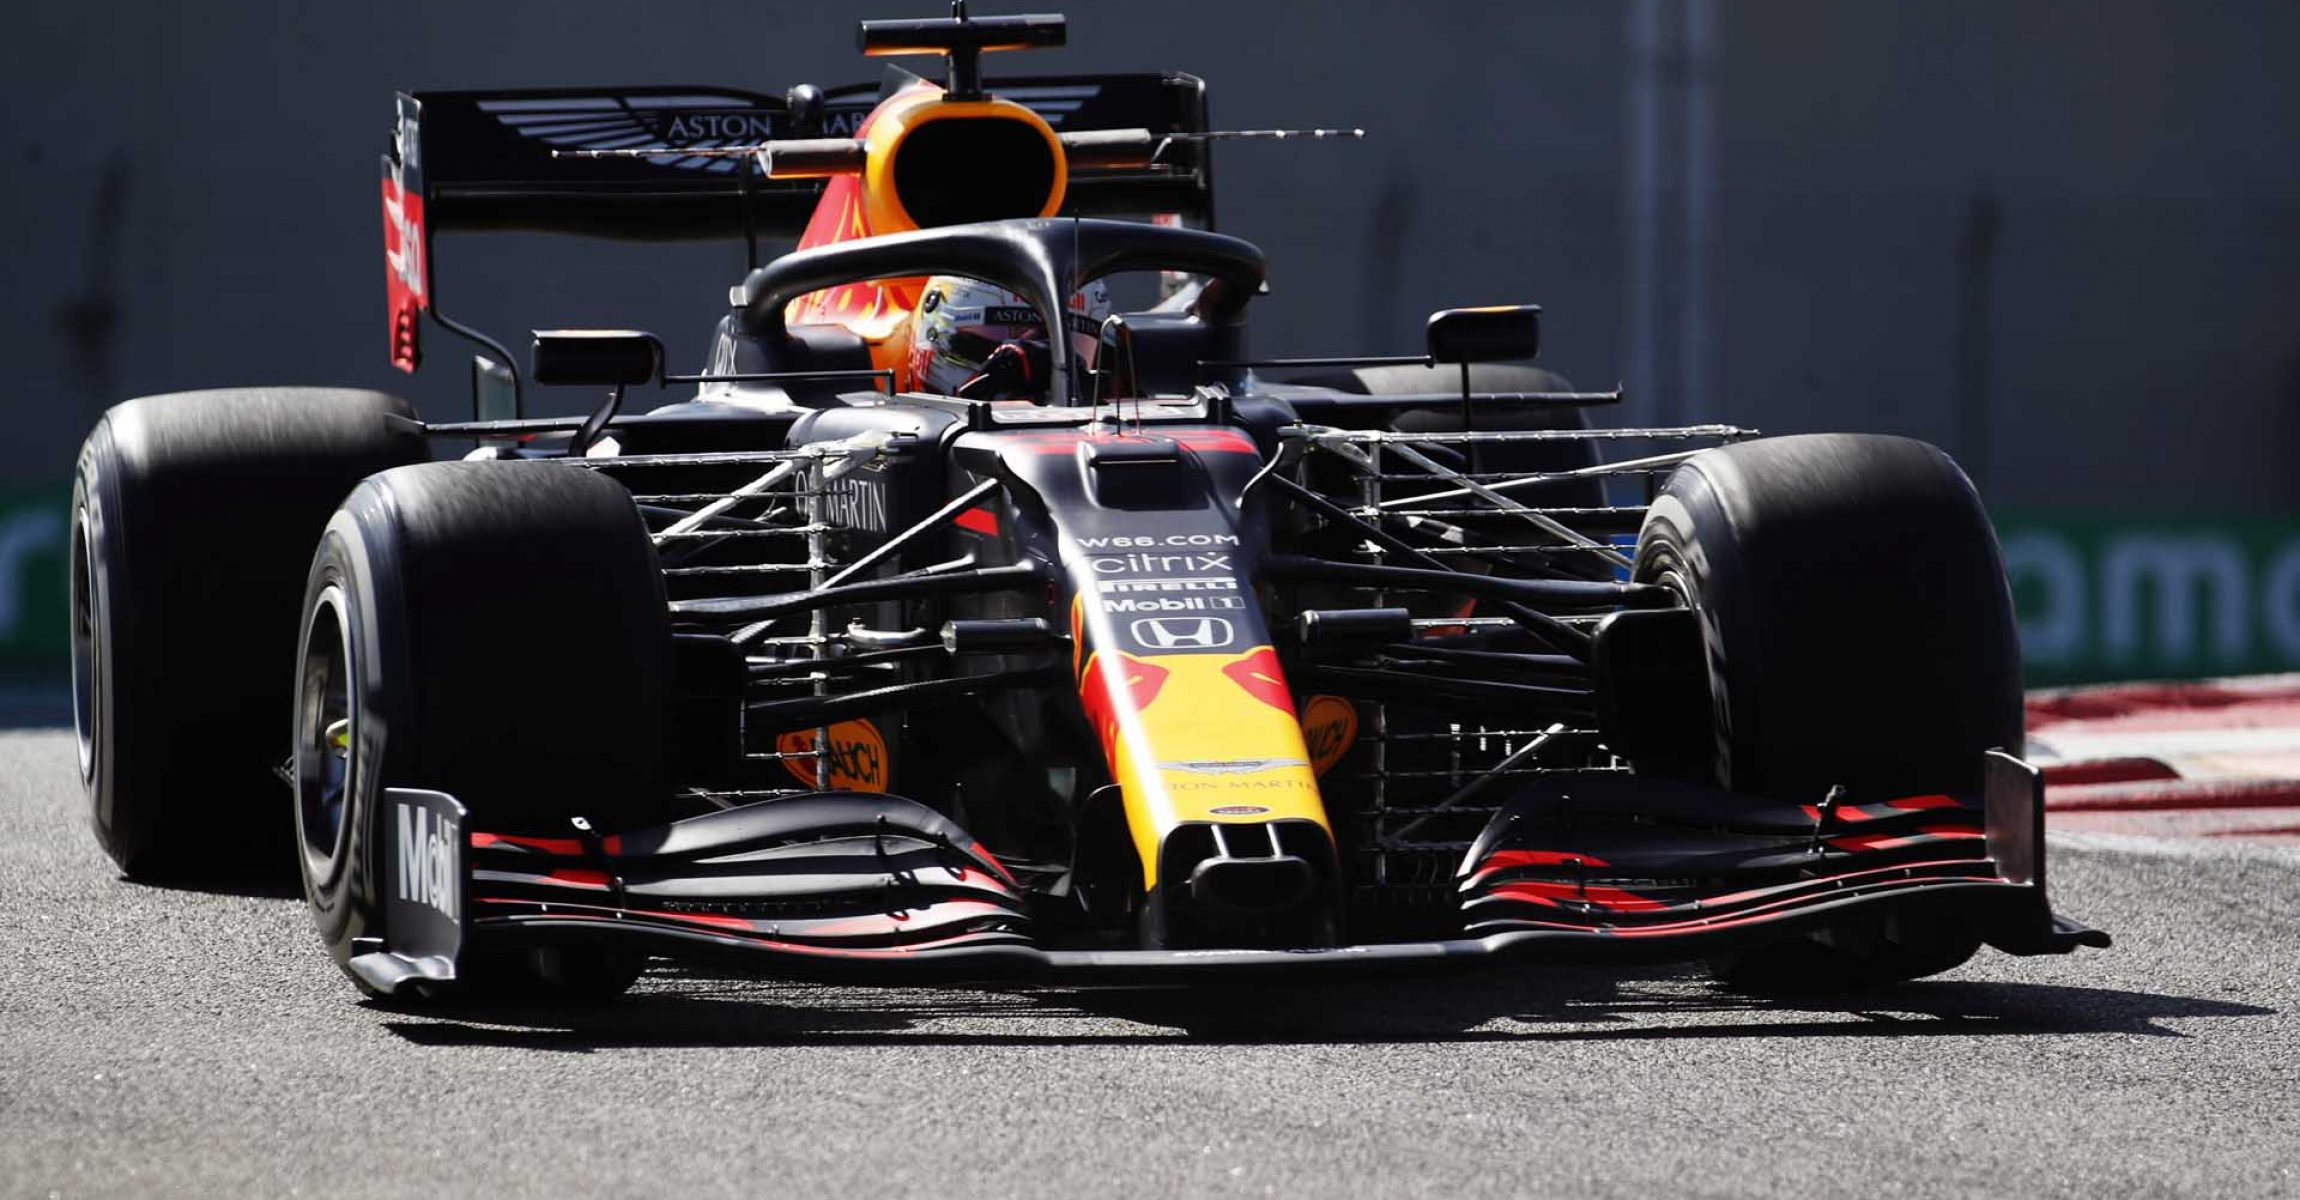 ABU DHABI, UNITED ARAB EMIRATES - DECEMBER 11: Max Verstappen of the Netherlands driving the (33) Aston Martin Red Bull Racing RB16 on track during practice ahead of the F1 Grand Prix of Abu Dhabi at Yas Marina Circuit on December 11, 2020 in Abu Dhabi, United Arab Emirates. (Photo by Hamad I Mohammed - Pool/Getty Images)